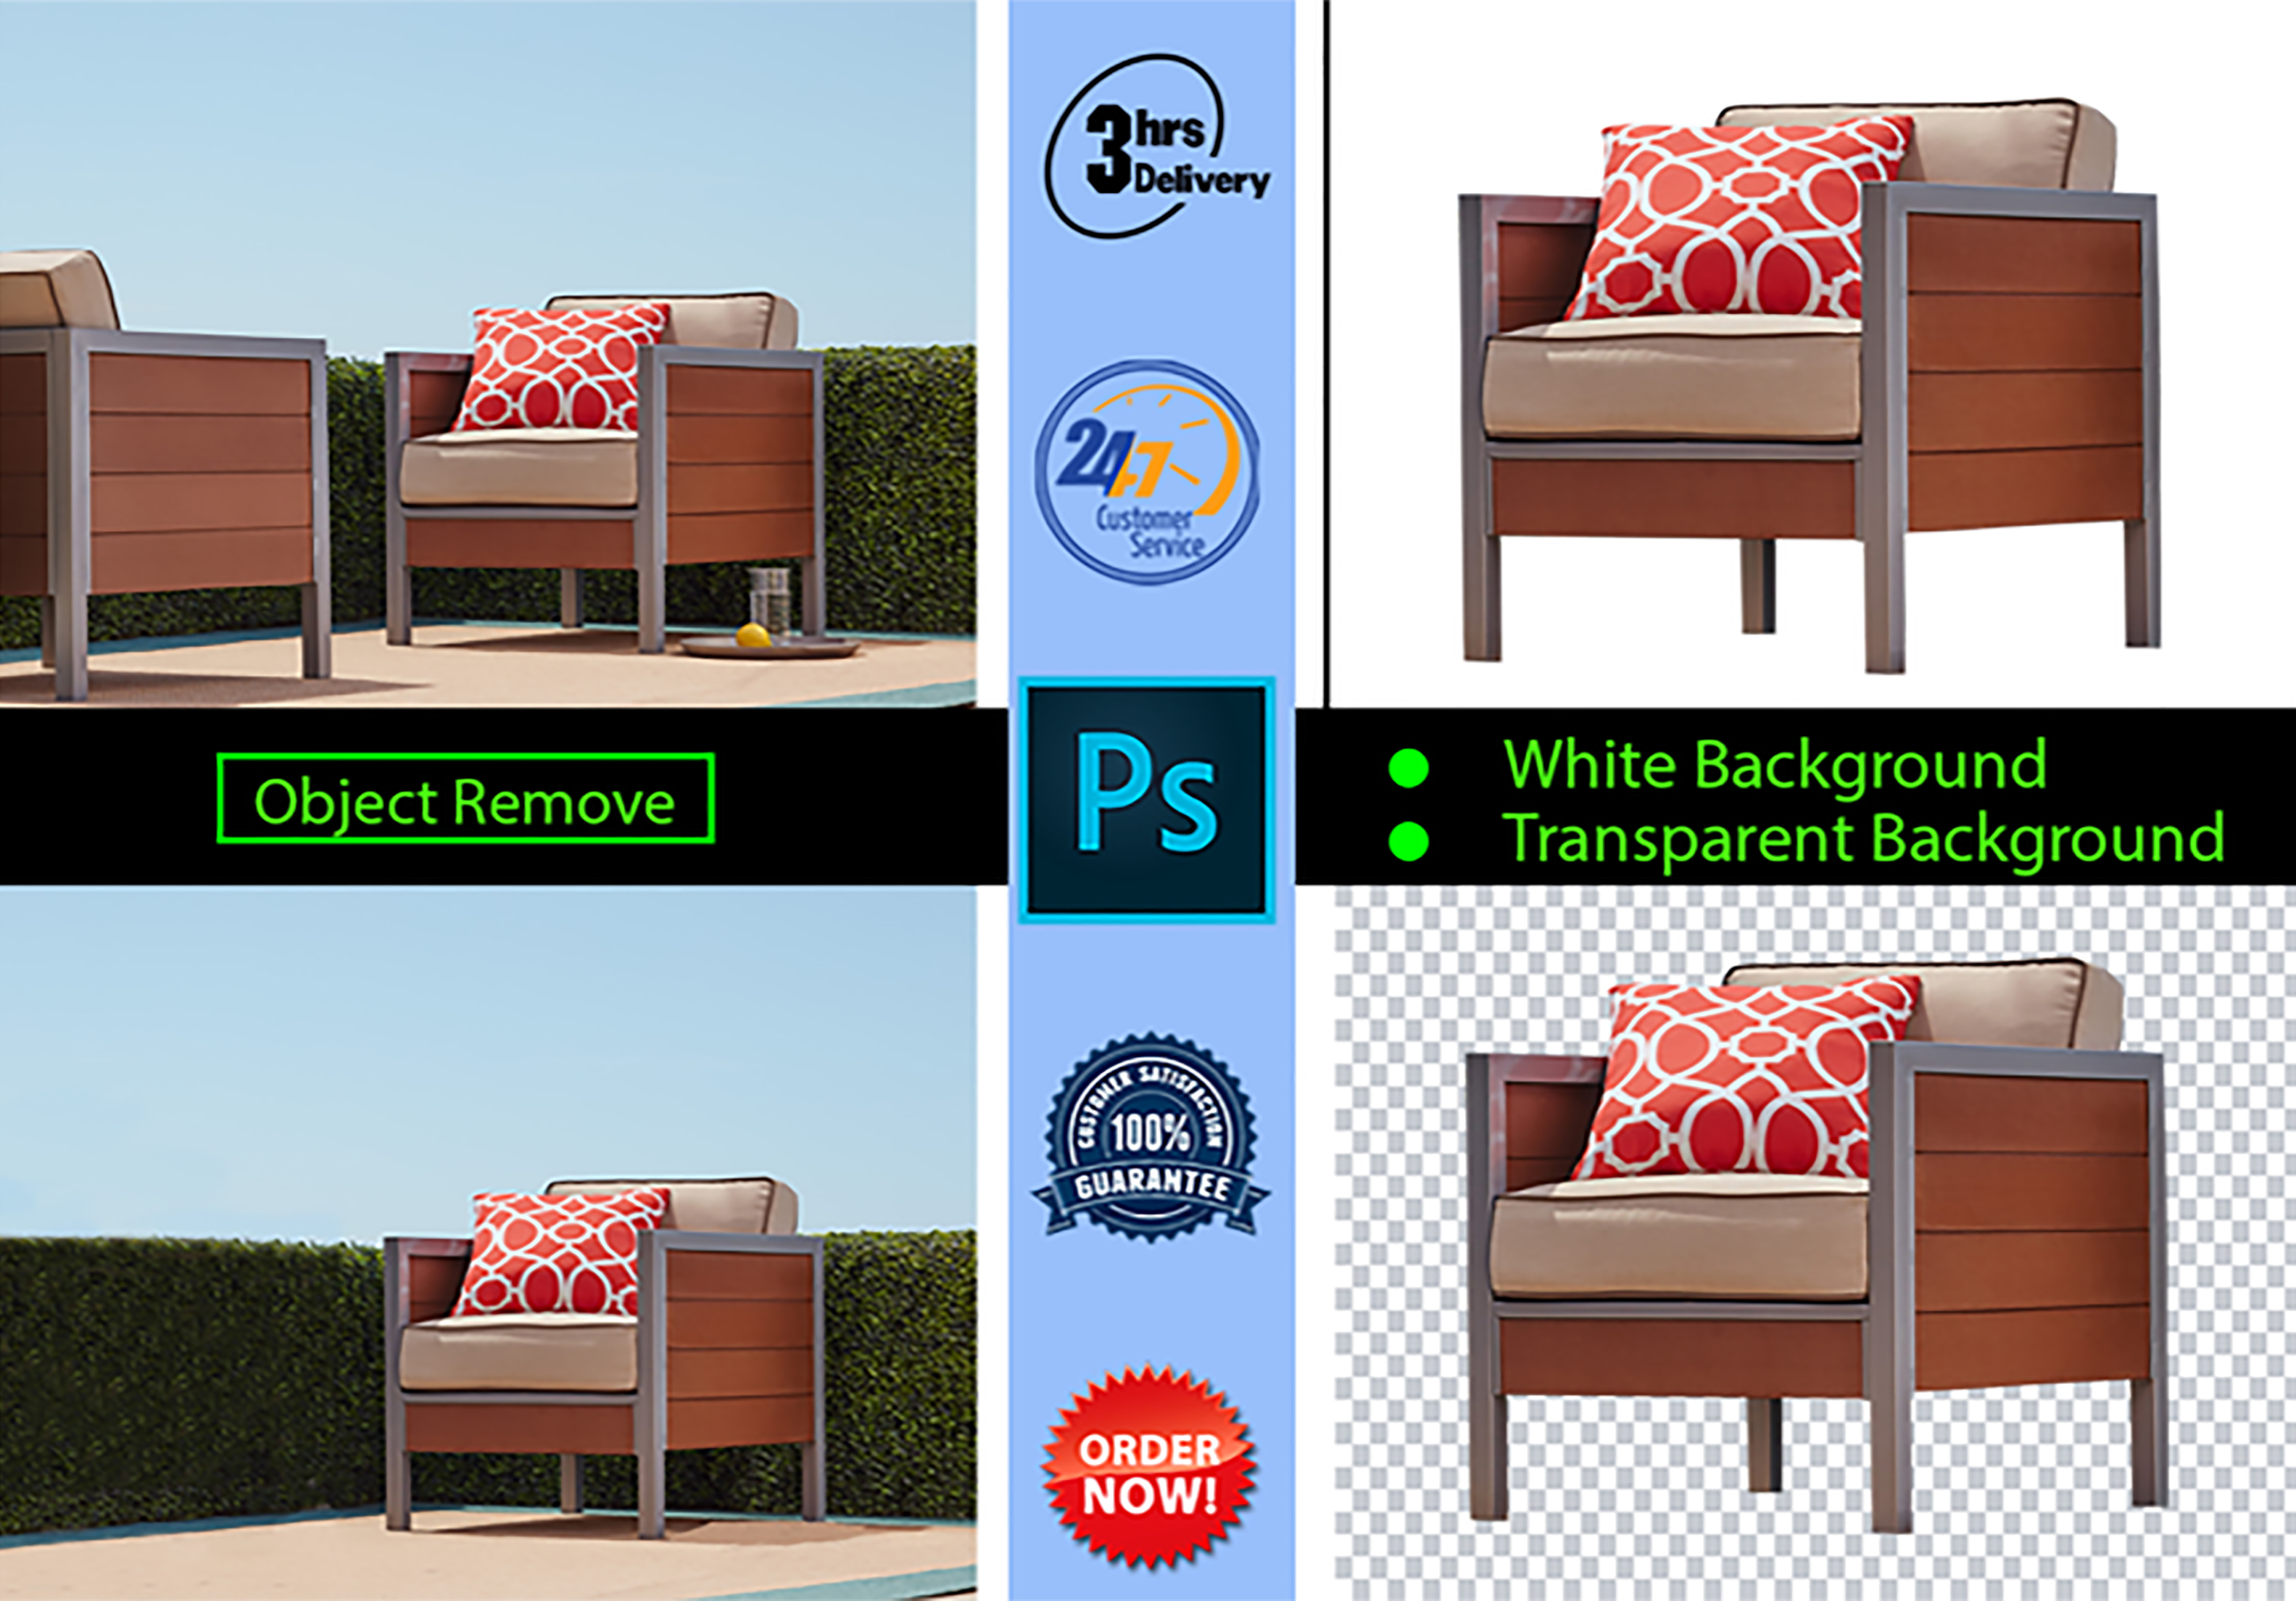 25 photo cut out or remove background from amazon product photo image